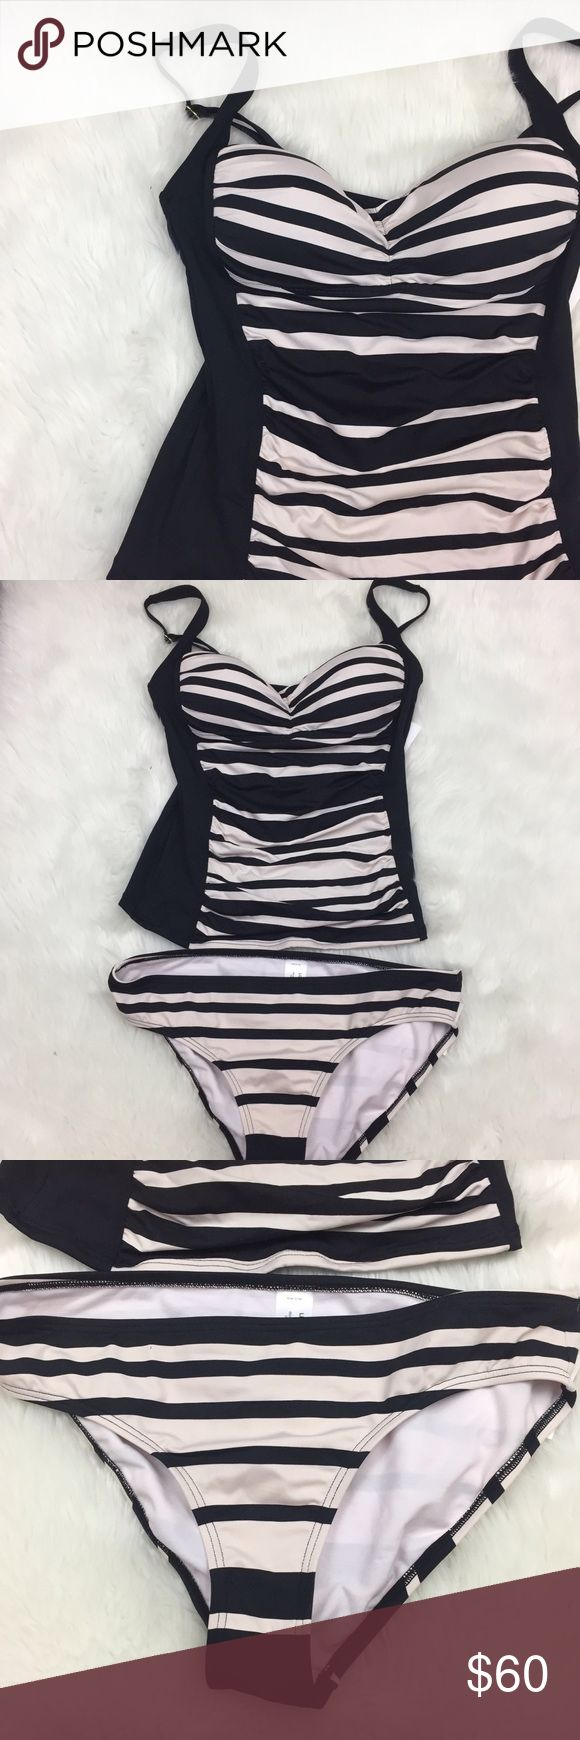 ⛱Liz Claiborne Ivory Black Striped Tankini Liz Claiborne Women's Ivory Black Striped Tankini Swimsuit Size 12  This is new with tags.  This has never been worn. Please refer to photos for more details. Liz Claiborne Swim Bikinis